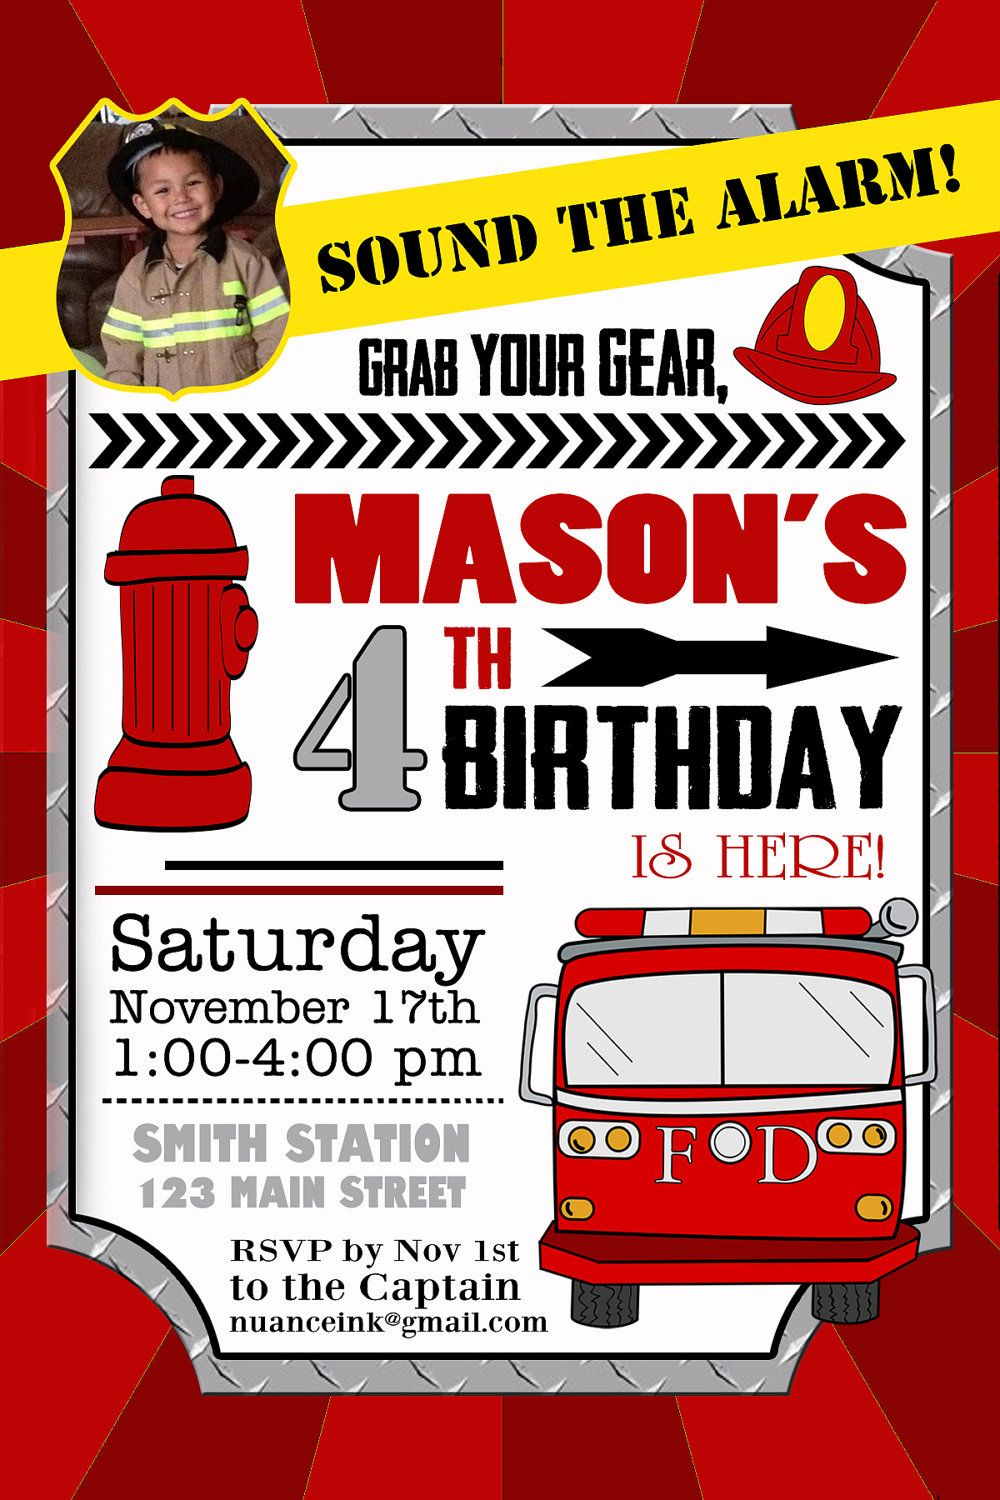 Cool Firefighter Birthday Invitation Ideas | FREE Printable ...